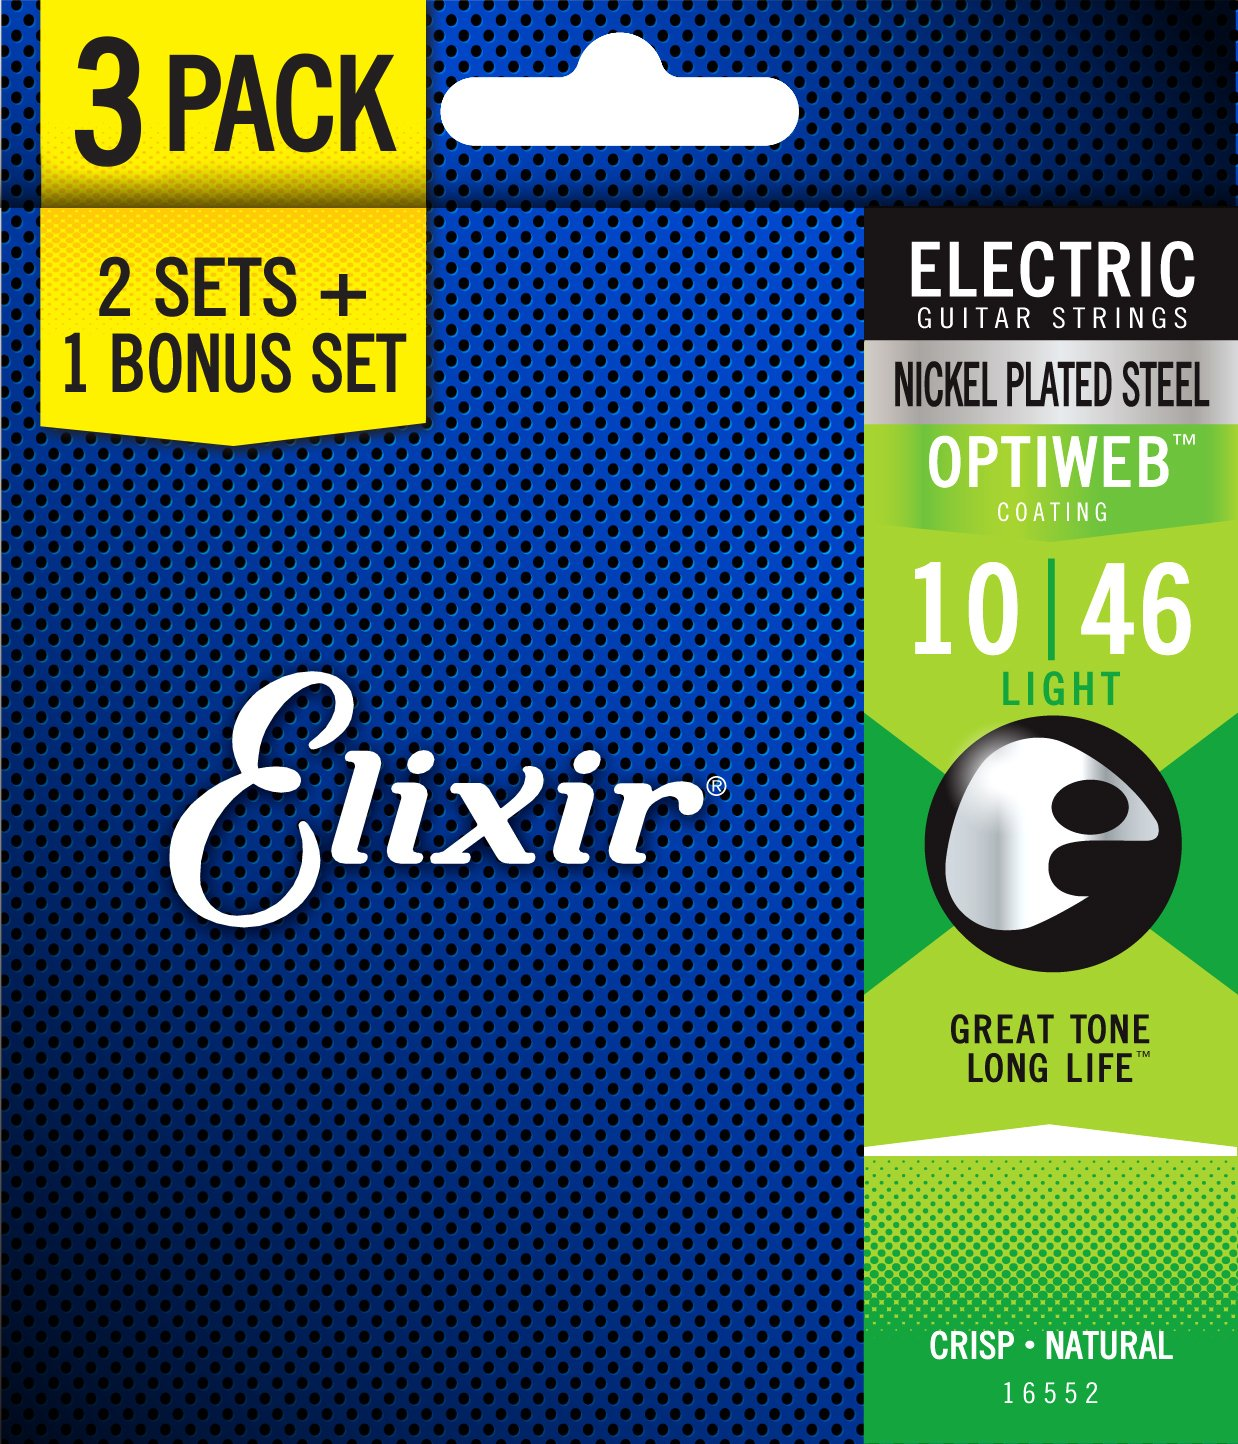 Elixir Strings 16552 Nickel Plated Steel Electric Guitar Strings with Optiweb Coating, Set of 3 Pieces